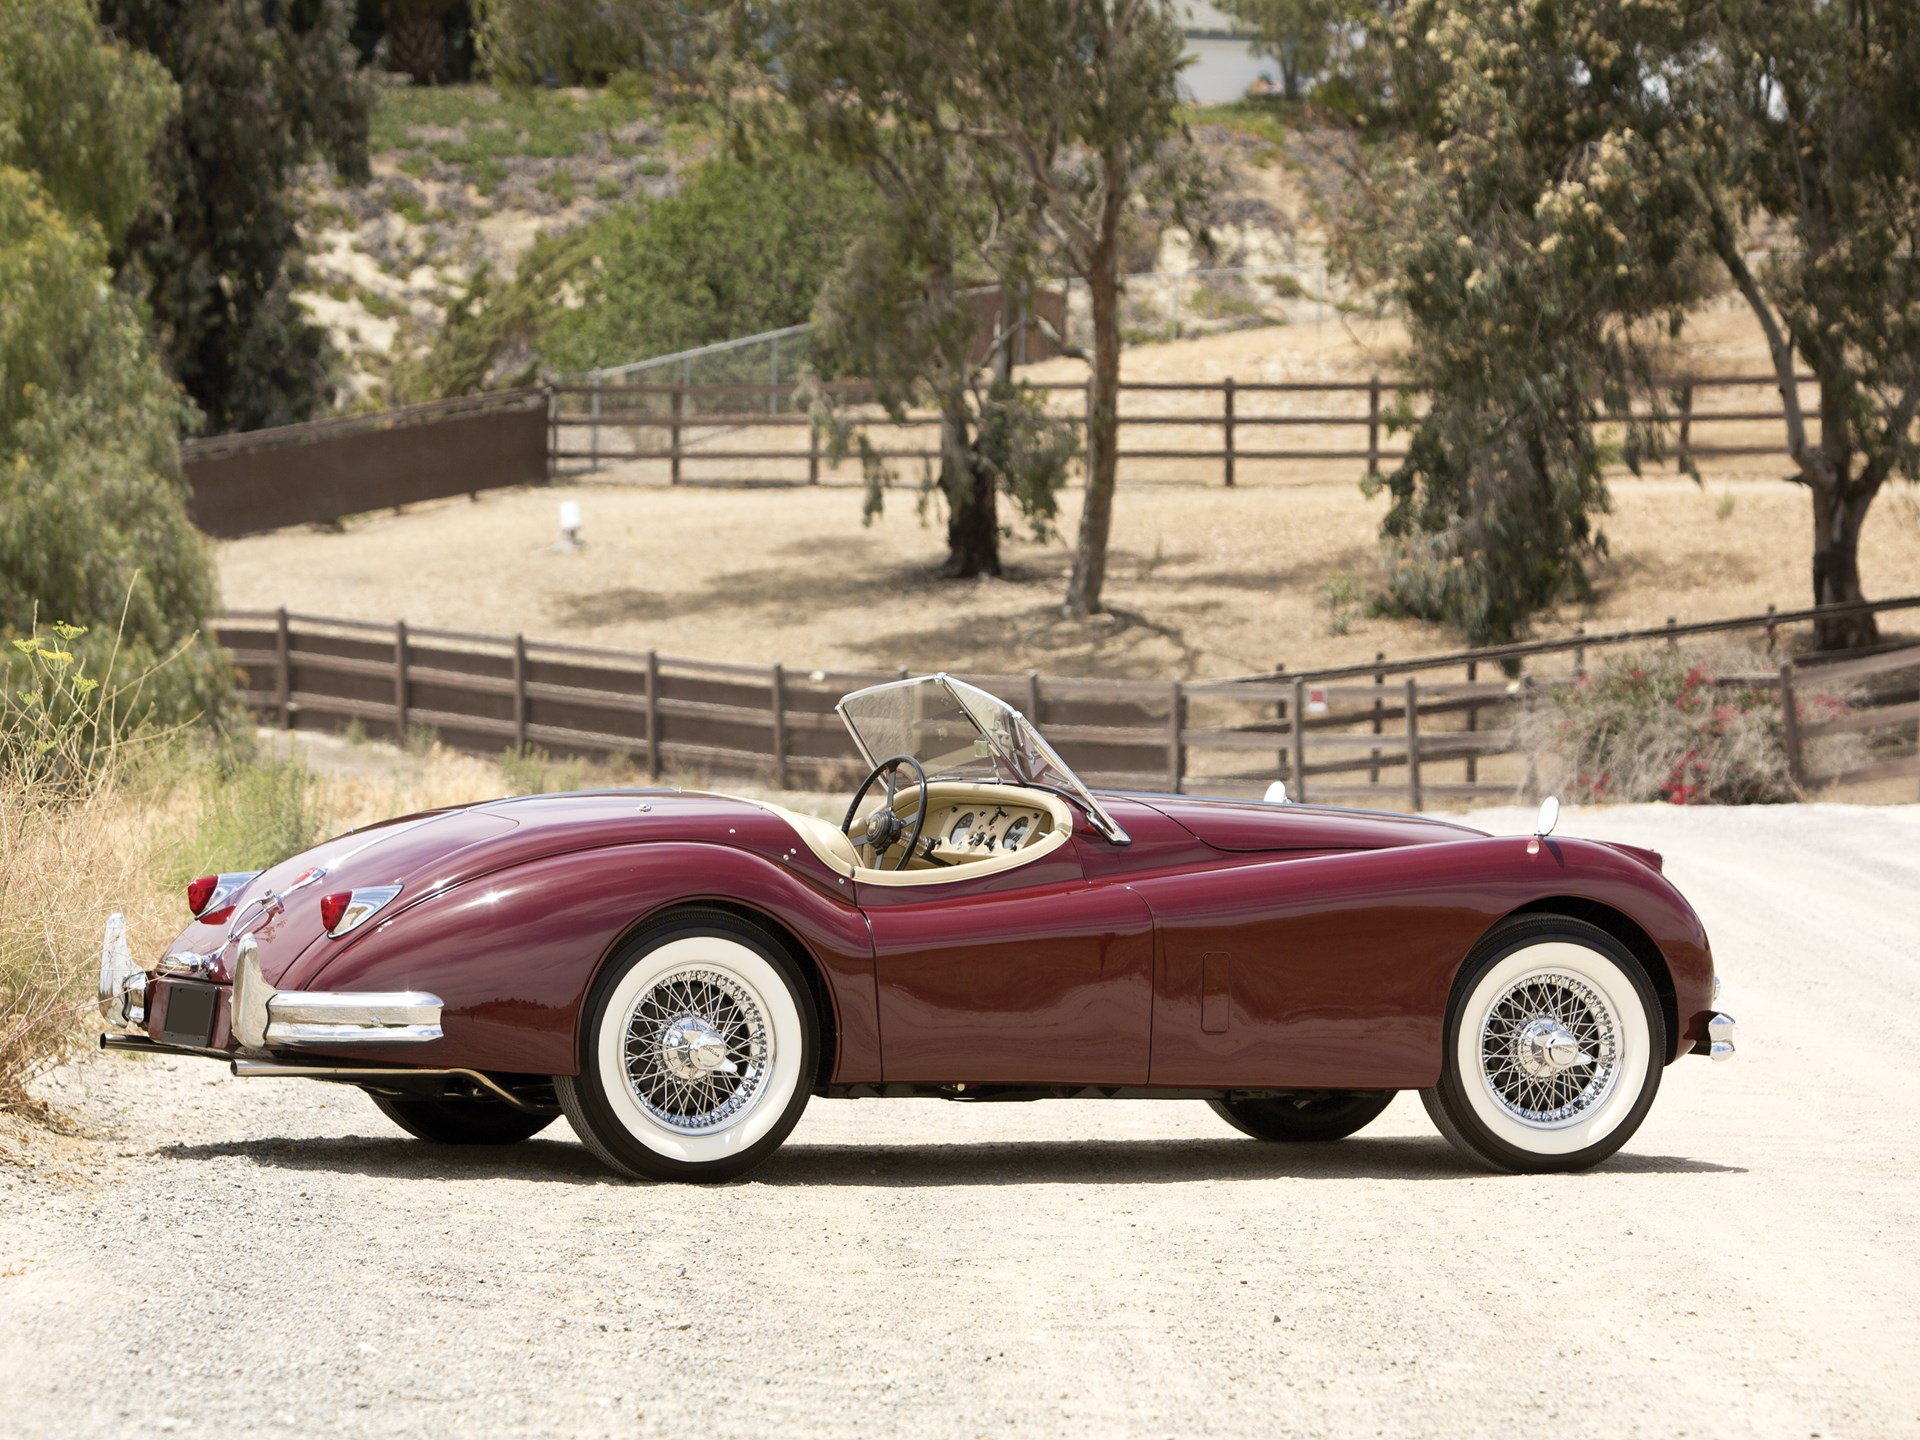 Captivating 1956 Jaguar XK140 MC 3.4 Roadster